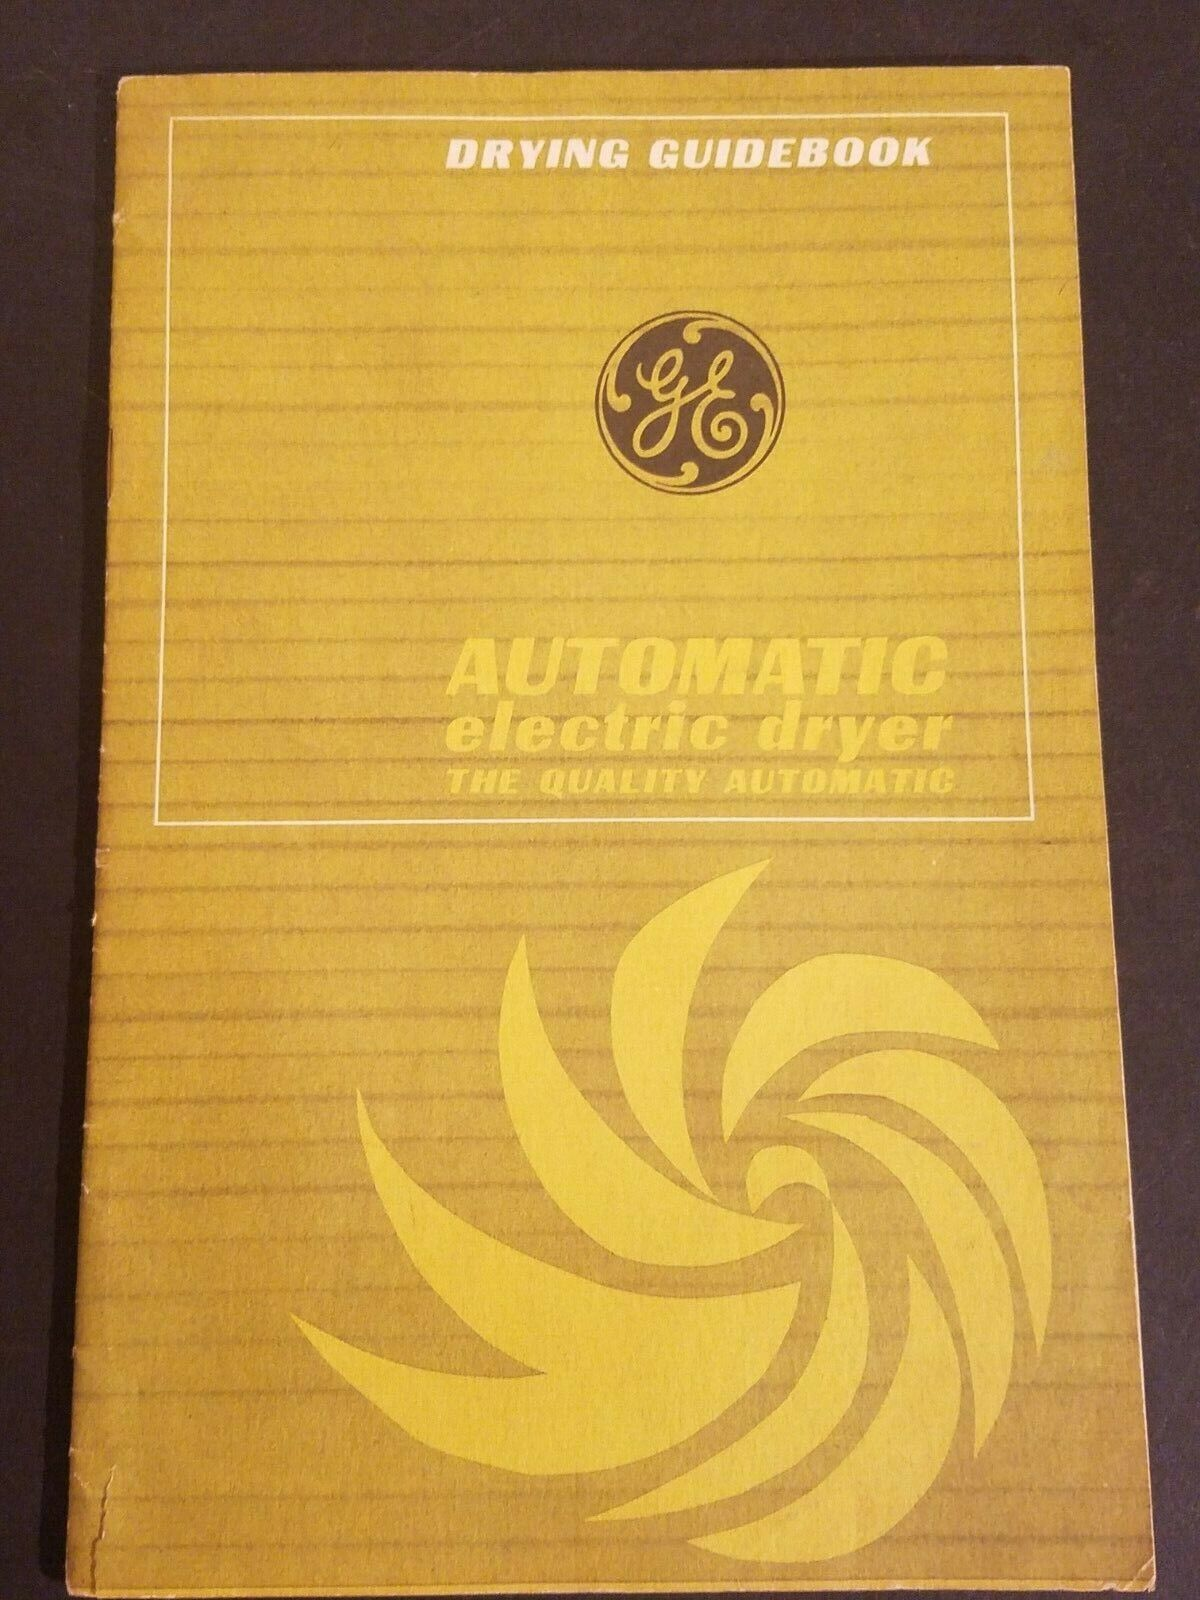 Vintage GE Automatic Electric Dryer Drying Guidebook